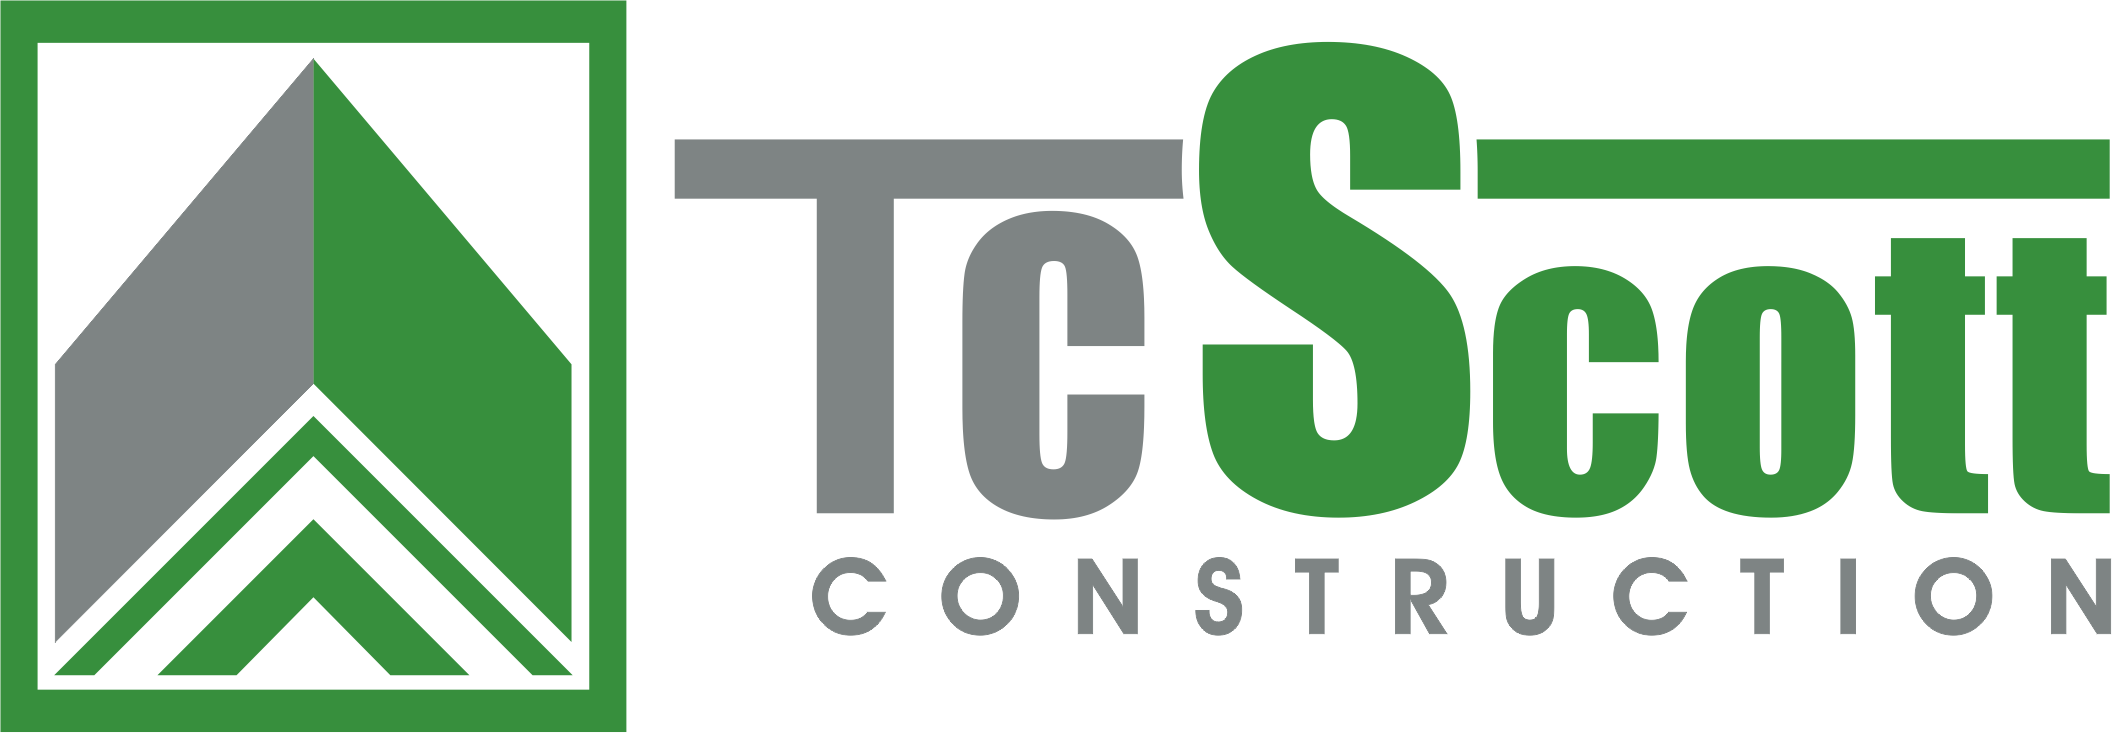 TC Scott Construction